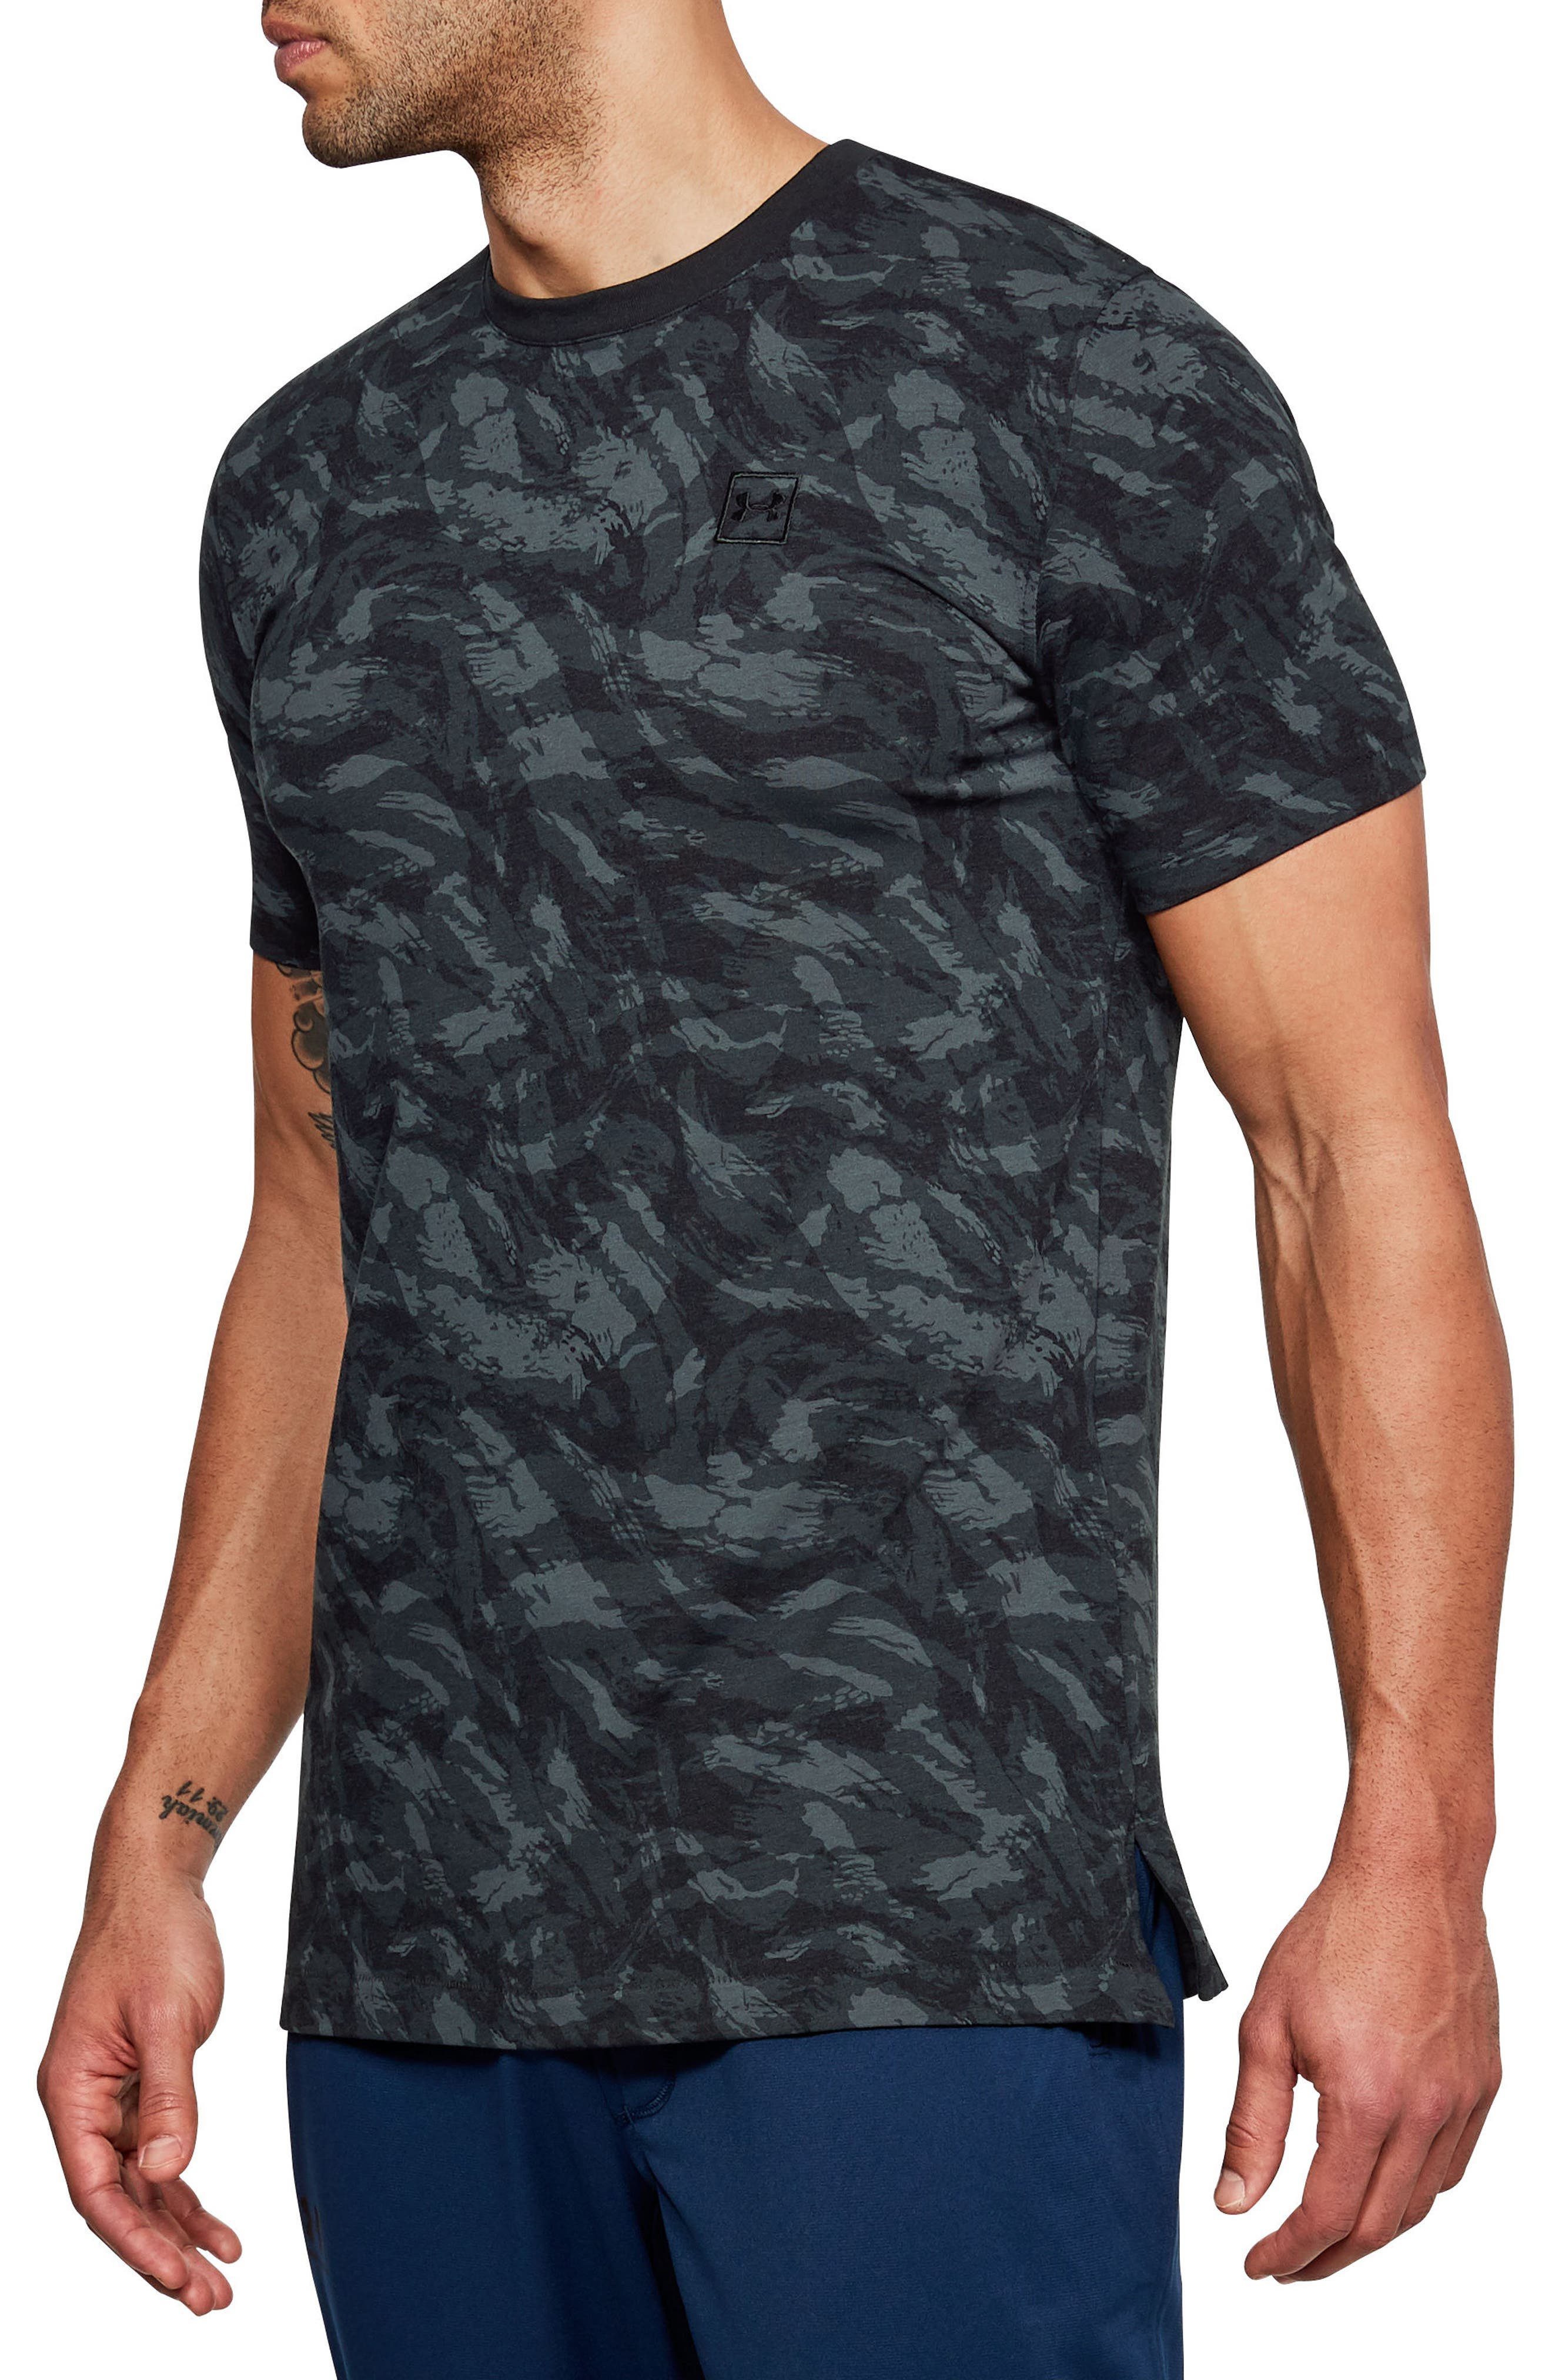 Under Armour Sportstyle Print Charged Cotton® Fitted T-Shirt